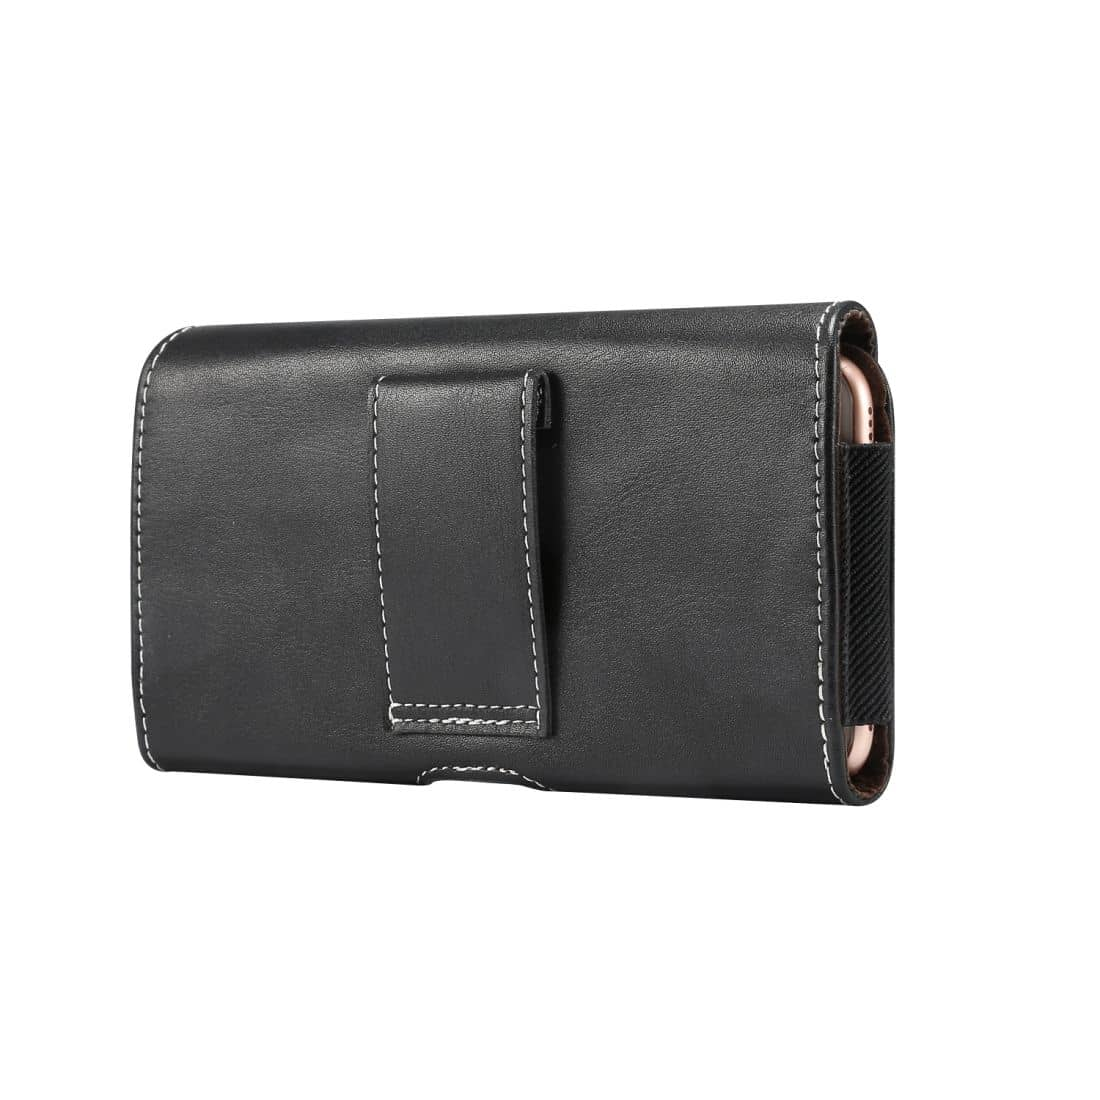 New Design Horizontal Leather Holster with Belt Loop for Samsung Galaxy S20+ (2020) - Black